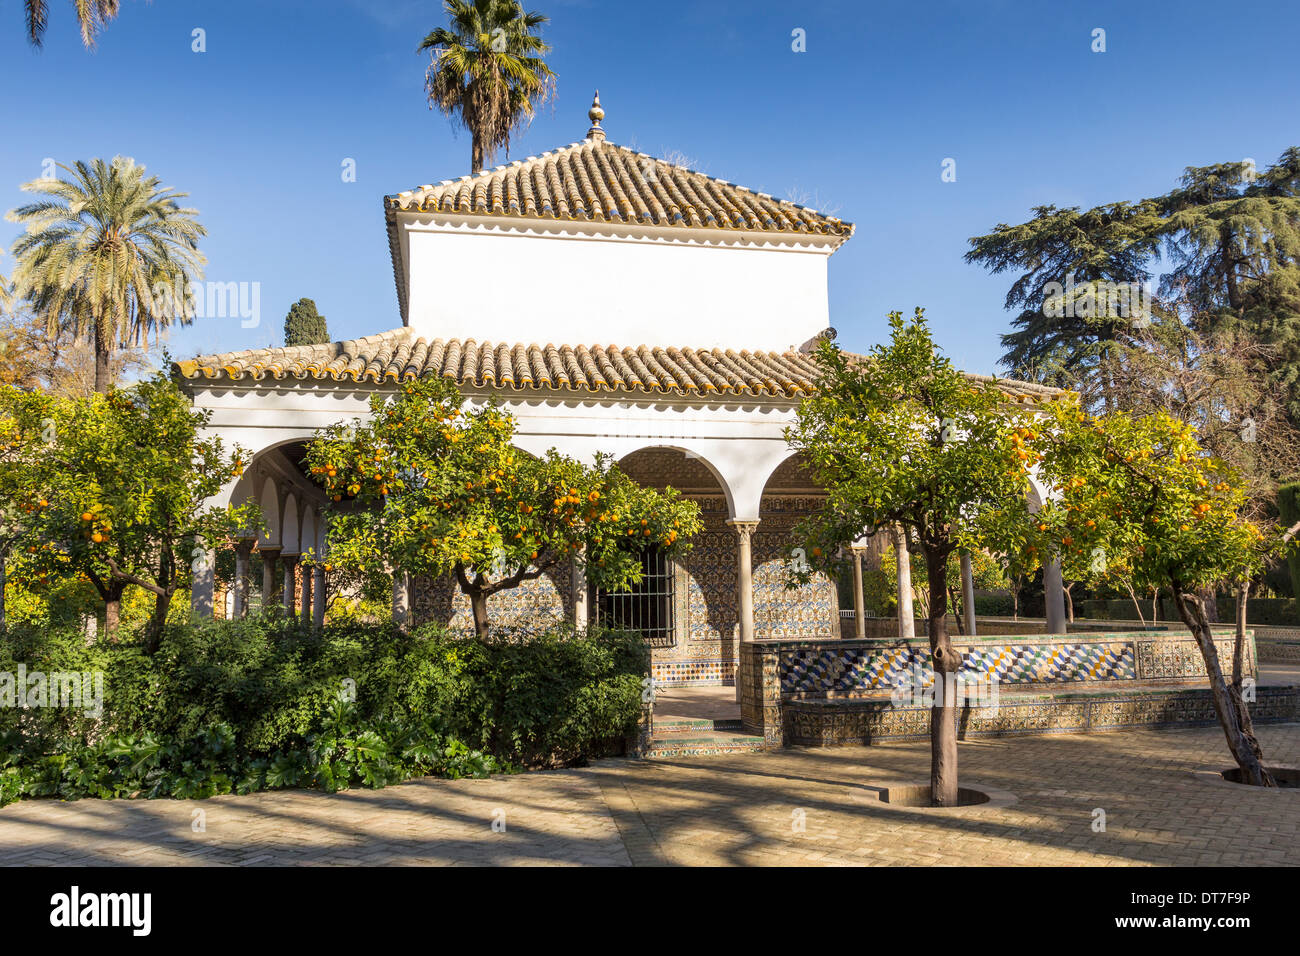 ALCAZAR OF SEVILLE SPAIN GARDENS AND THE PAVILION OF CARLOS V SURROUNDED BY ORANGE TREES FULL OF FRUIT IN DECEMBER - Stock Image